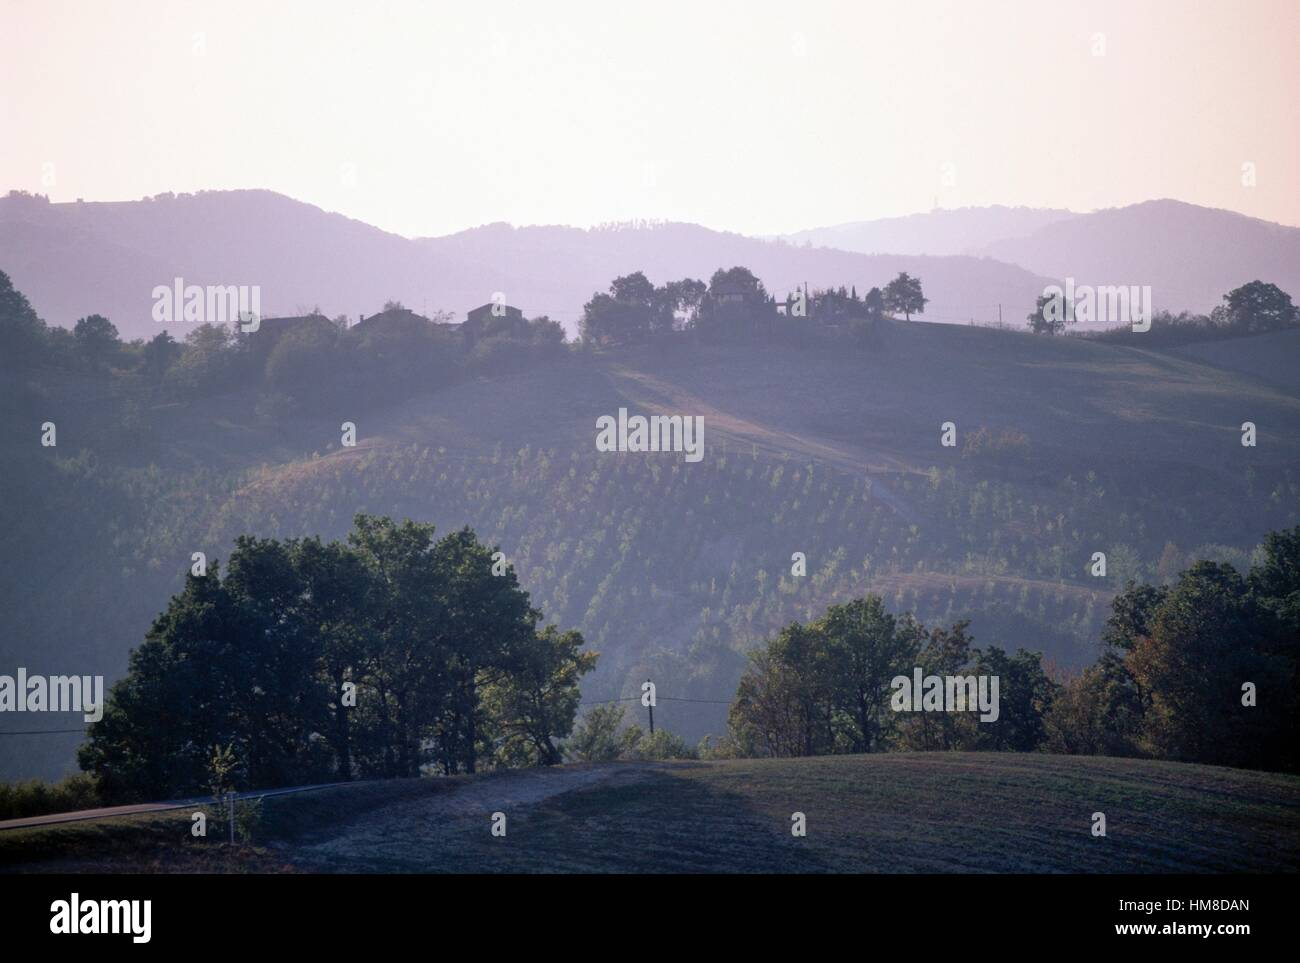 Agricultural landscape and trees between Castel San Pietro Terme and Sassoleone, Emilia-Romagna, Italy. - Stock Image